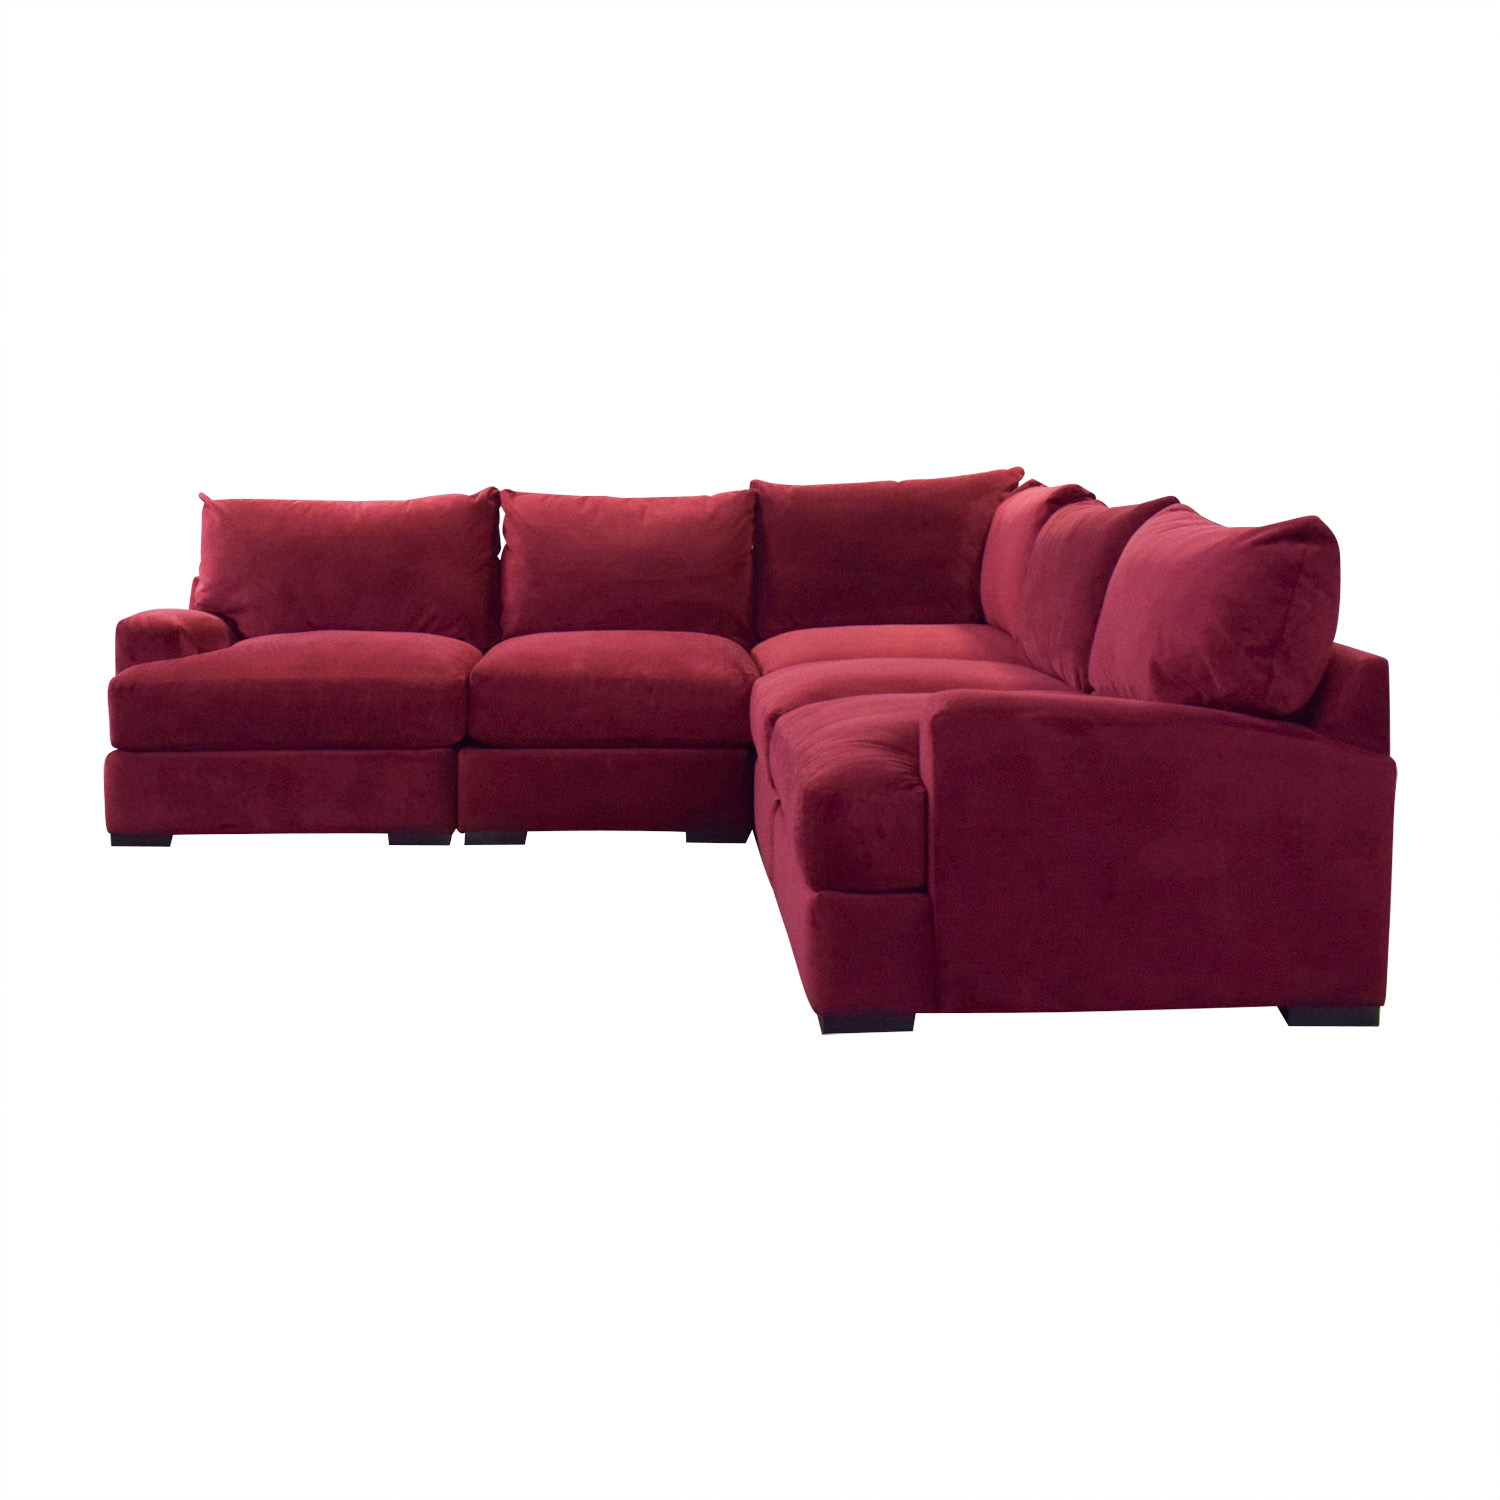 Macy's Macy's Rhyder Sectional price